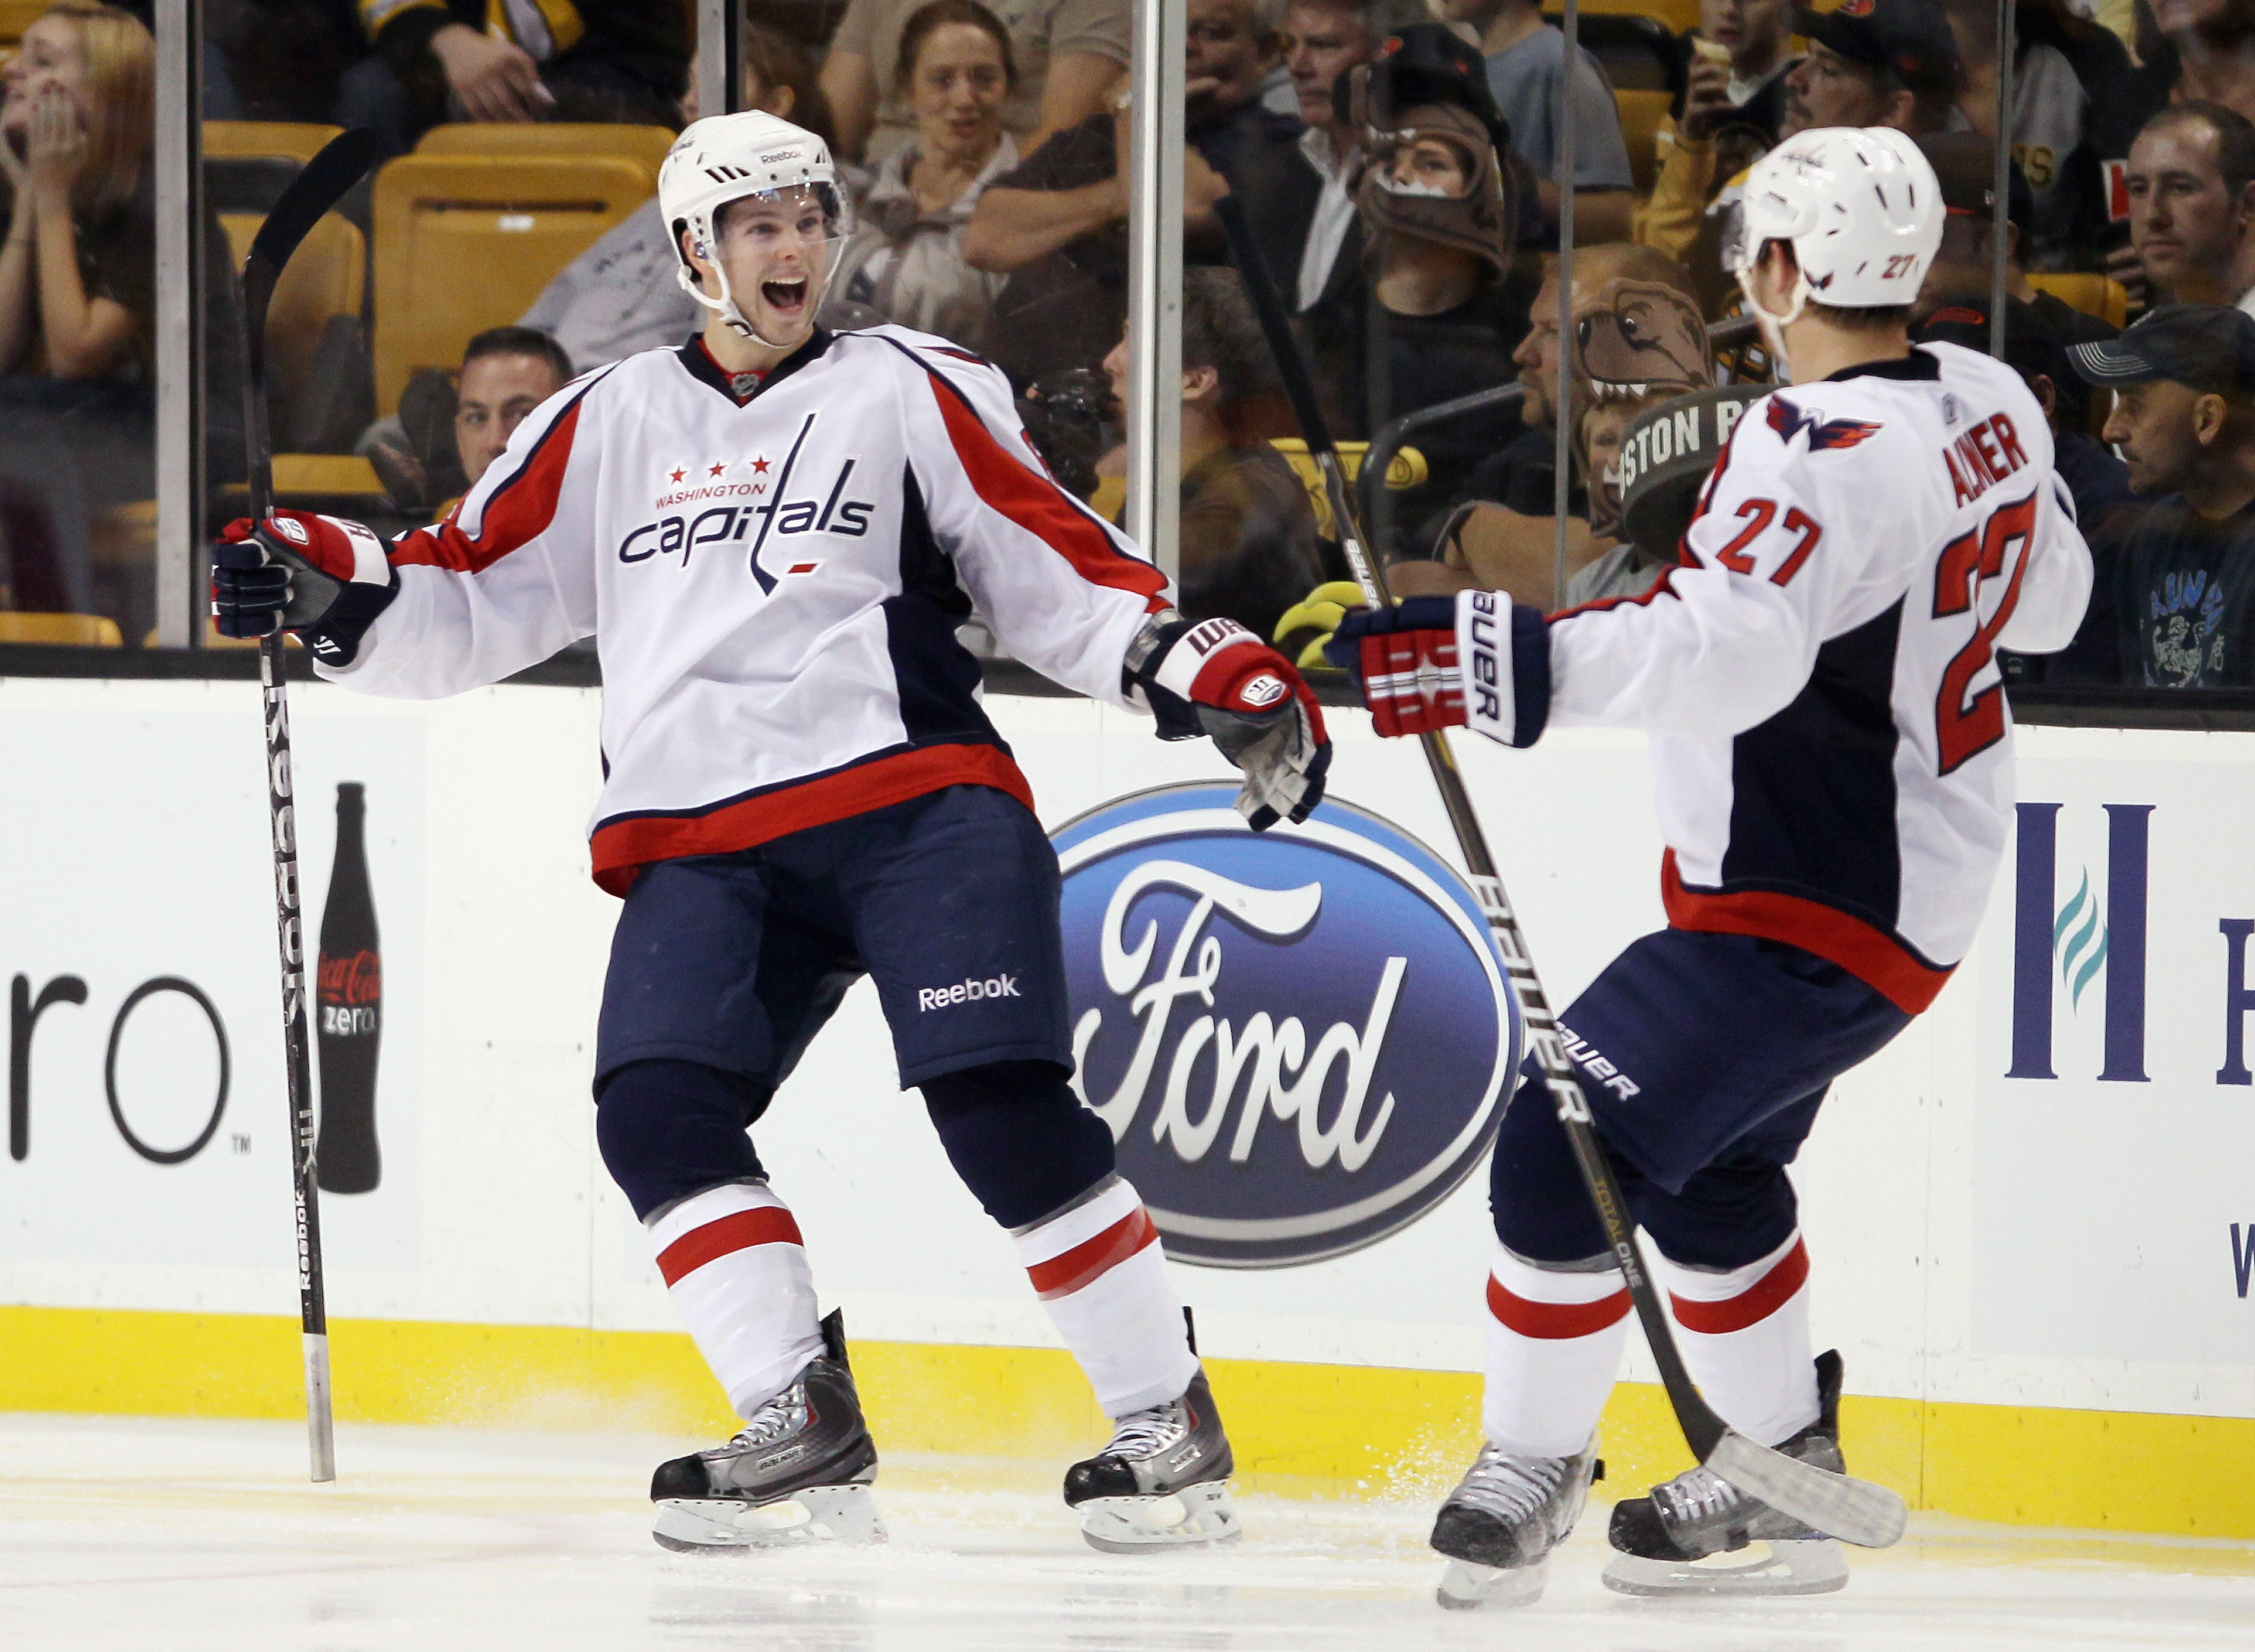 BOSTON - SEPTEMBER 29:  Andrew Gordon #63 and Karl Alzner #27 of the Washington Capitals celebrate a goal in the third period against the Boston Bruins on September 29, 2010 at the TD Garden in Boston, Massachusetts. The Capitals defeated the Bruins 4-1.